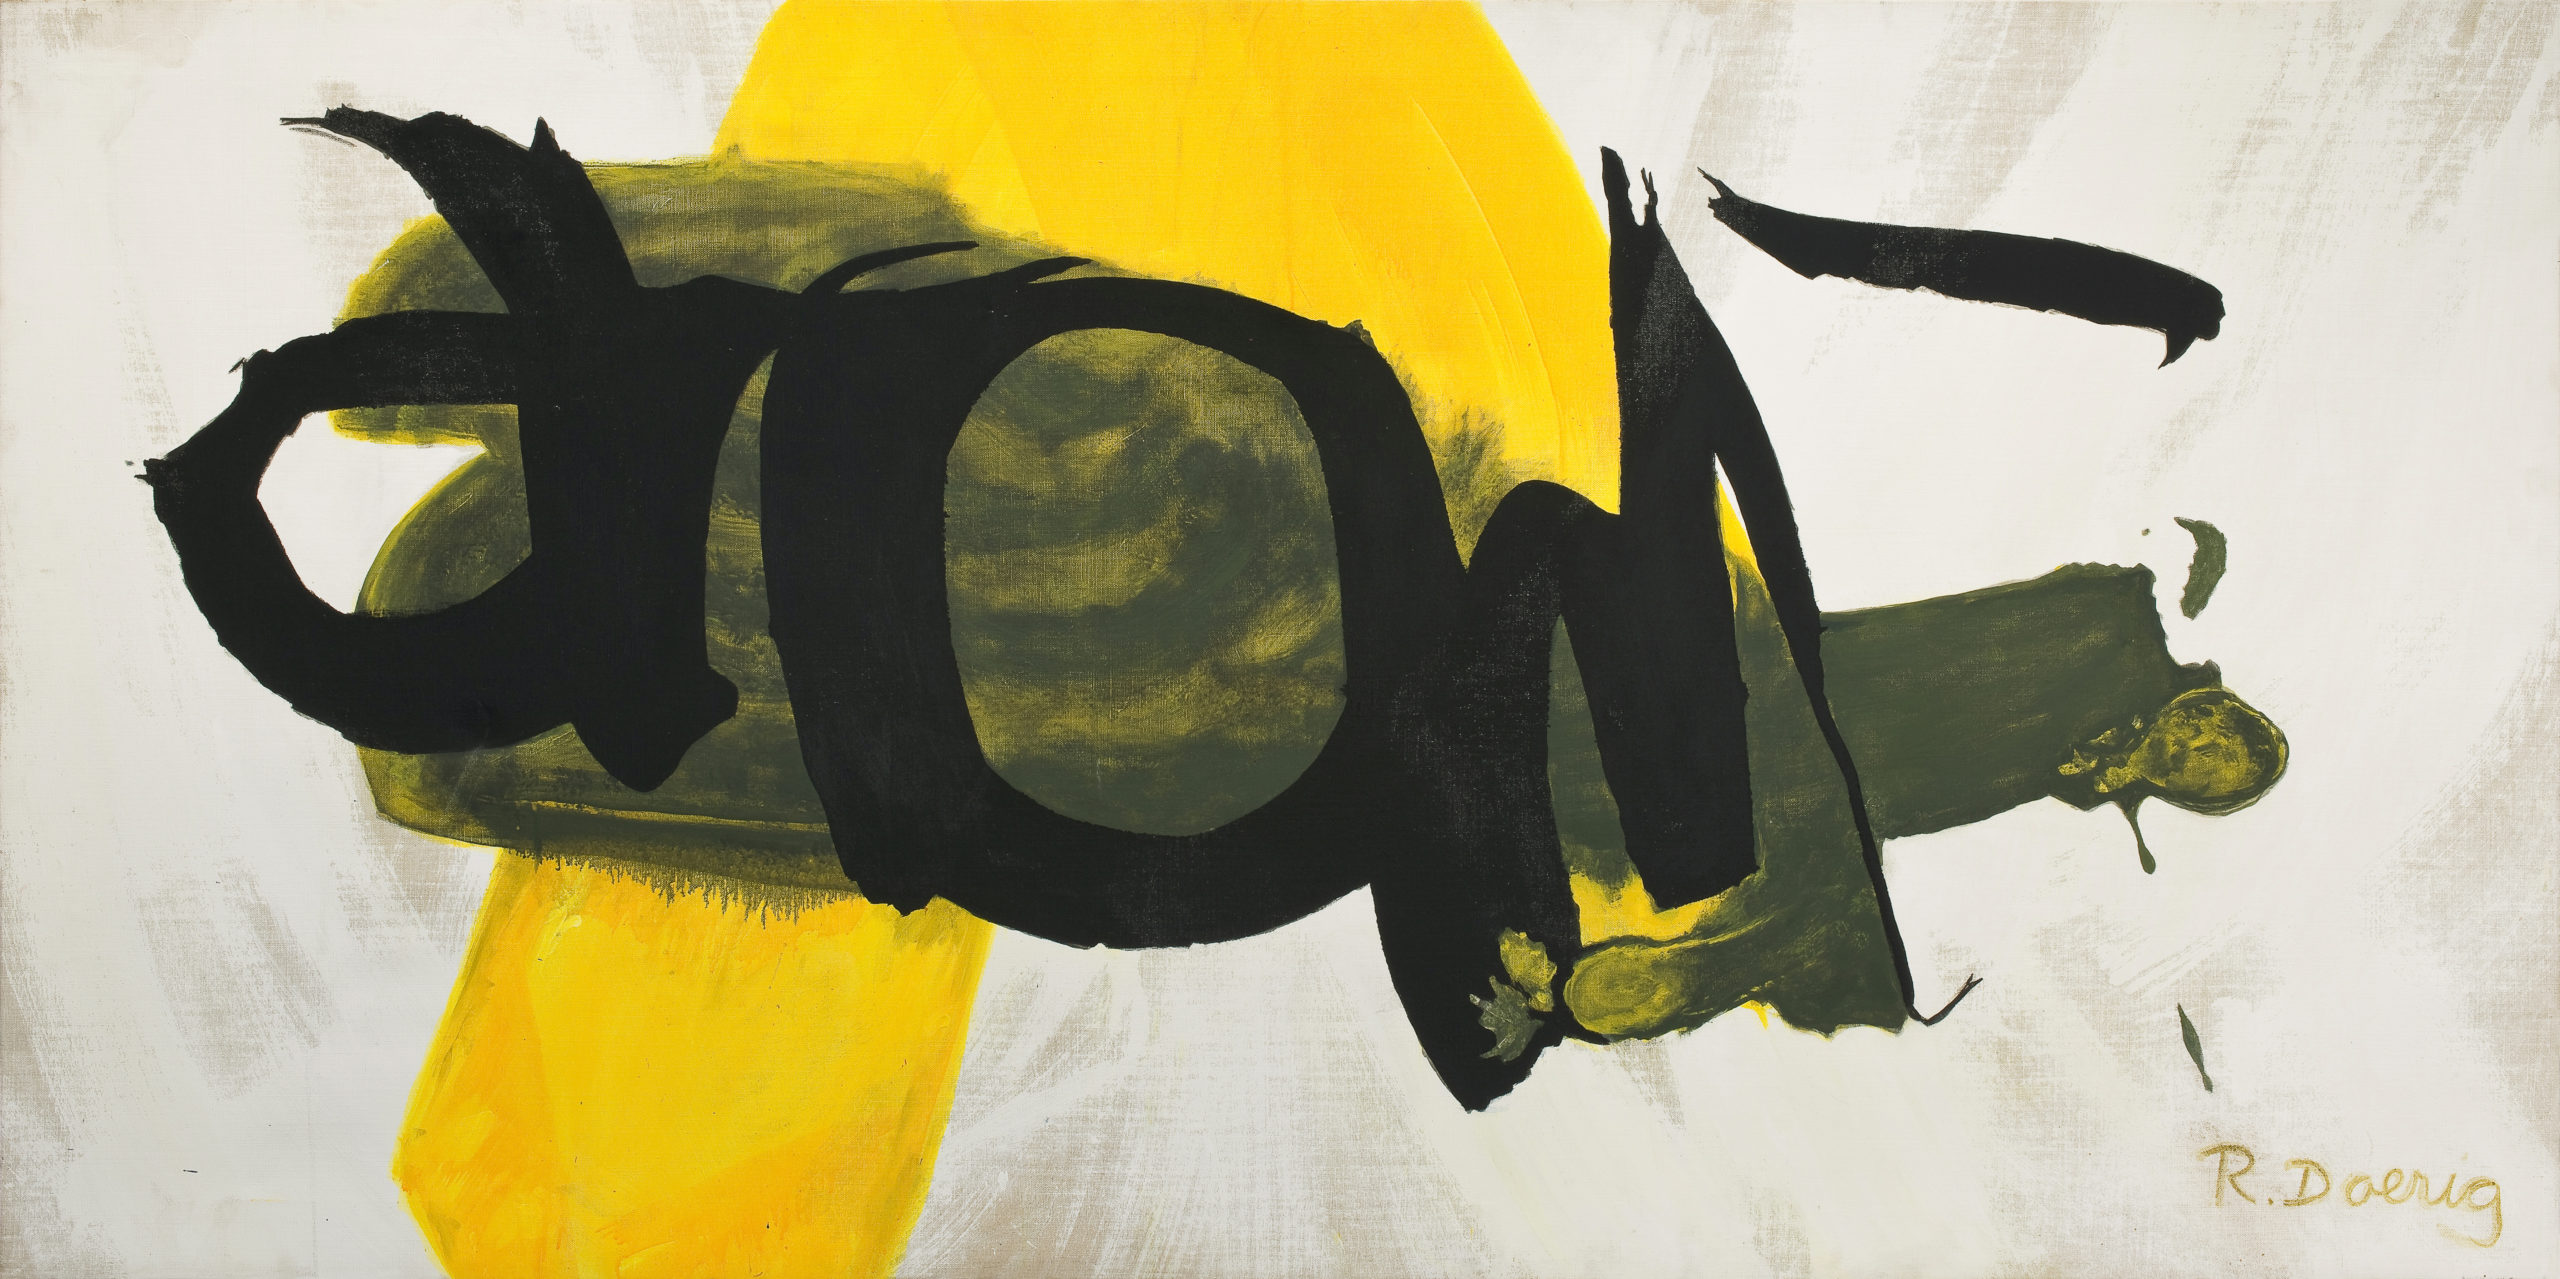 roswitha doerig - ecriture jaune 1992 newsletter art comes to you 13